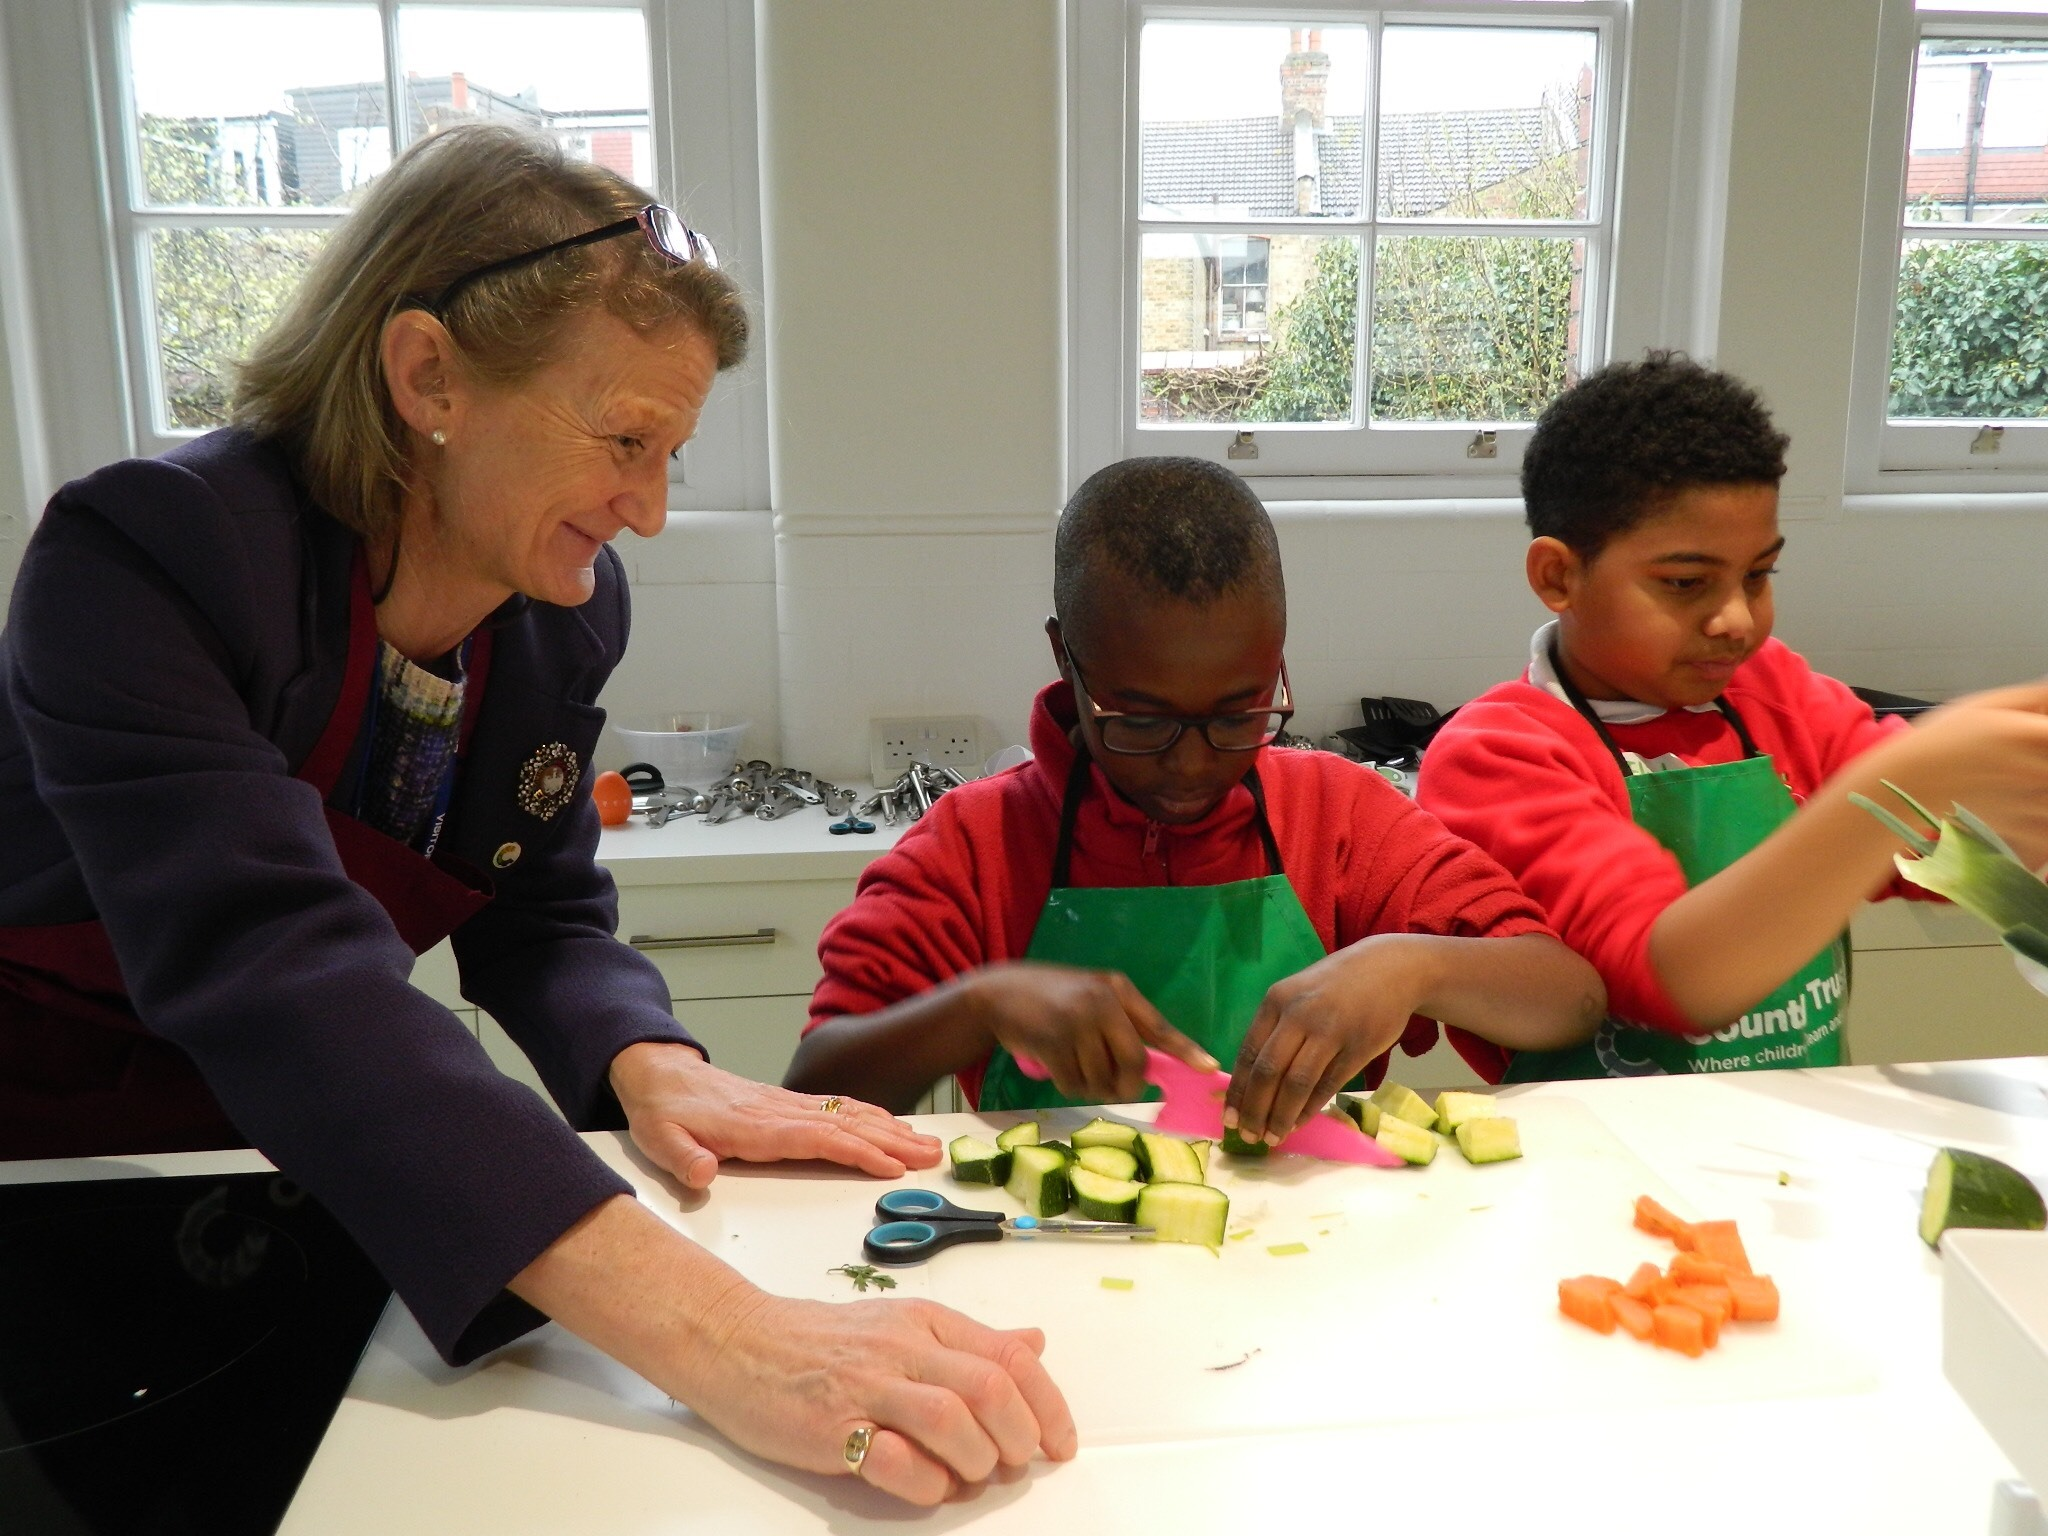 The Lady Mayoress of the City of London visited Woodside Primary Academy in Walthamstow